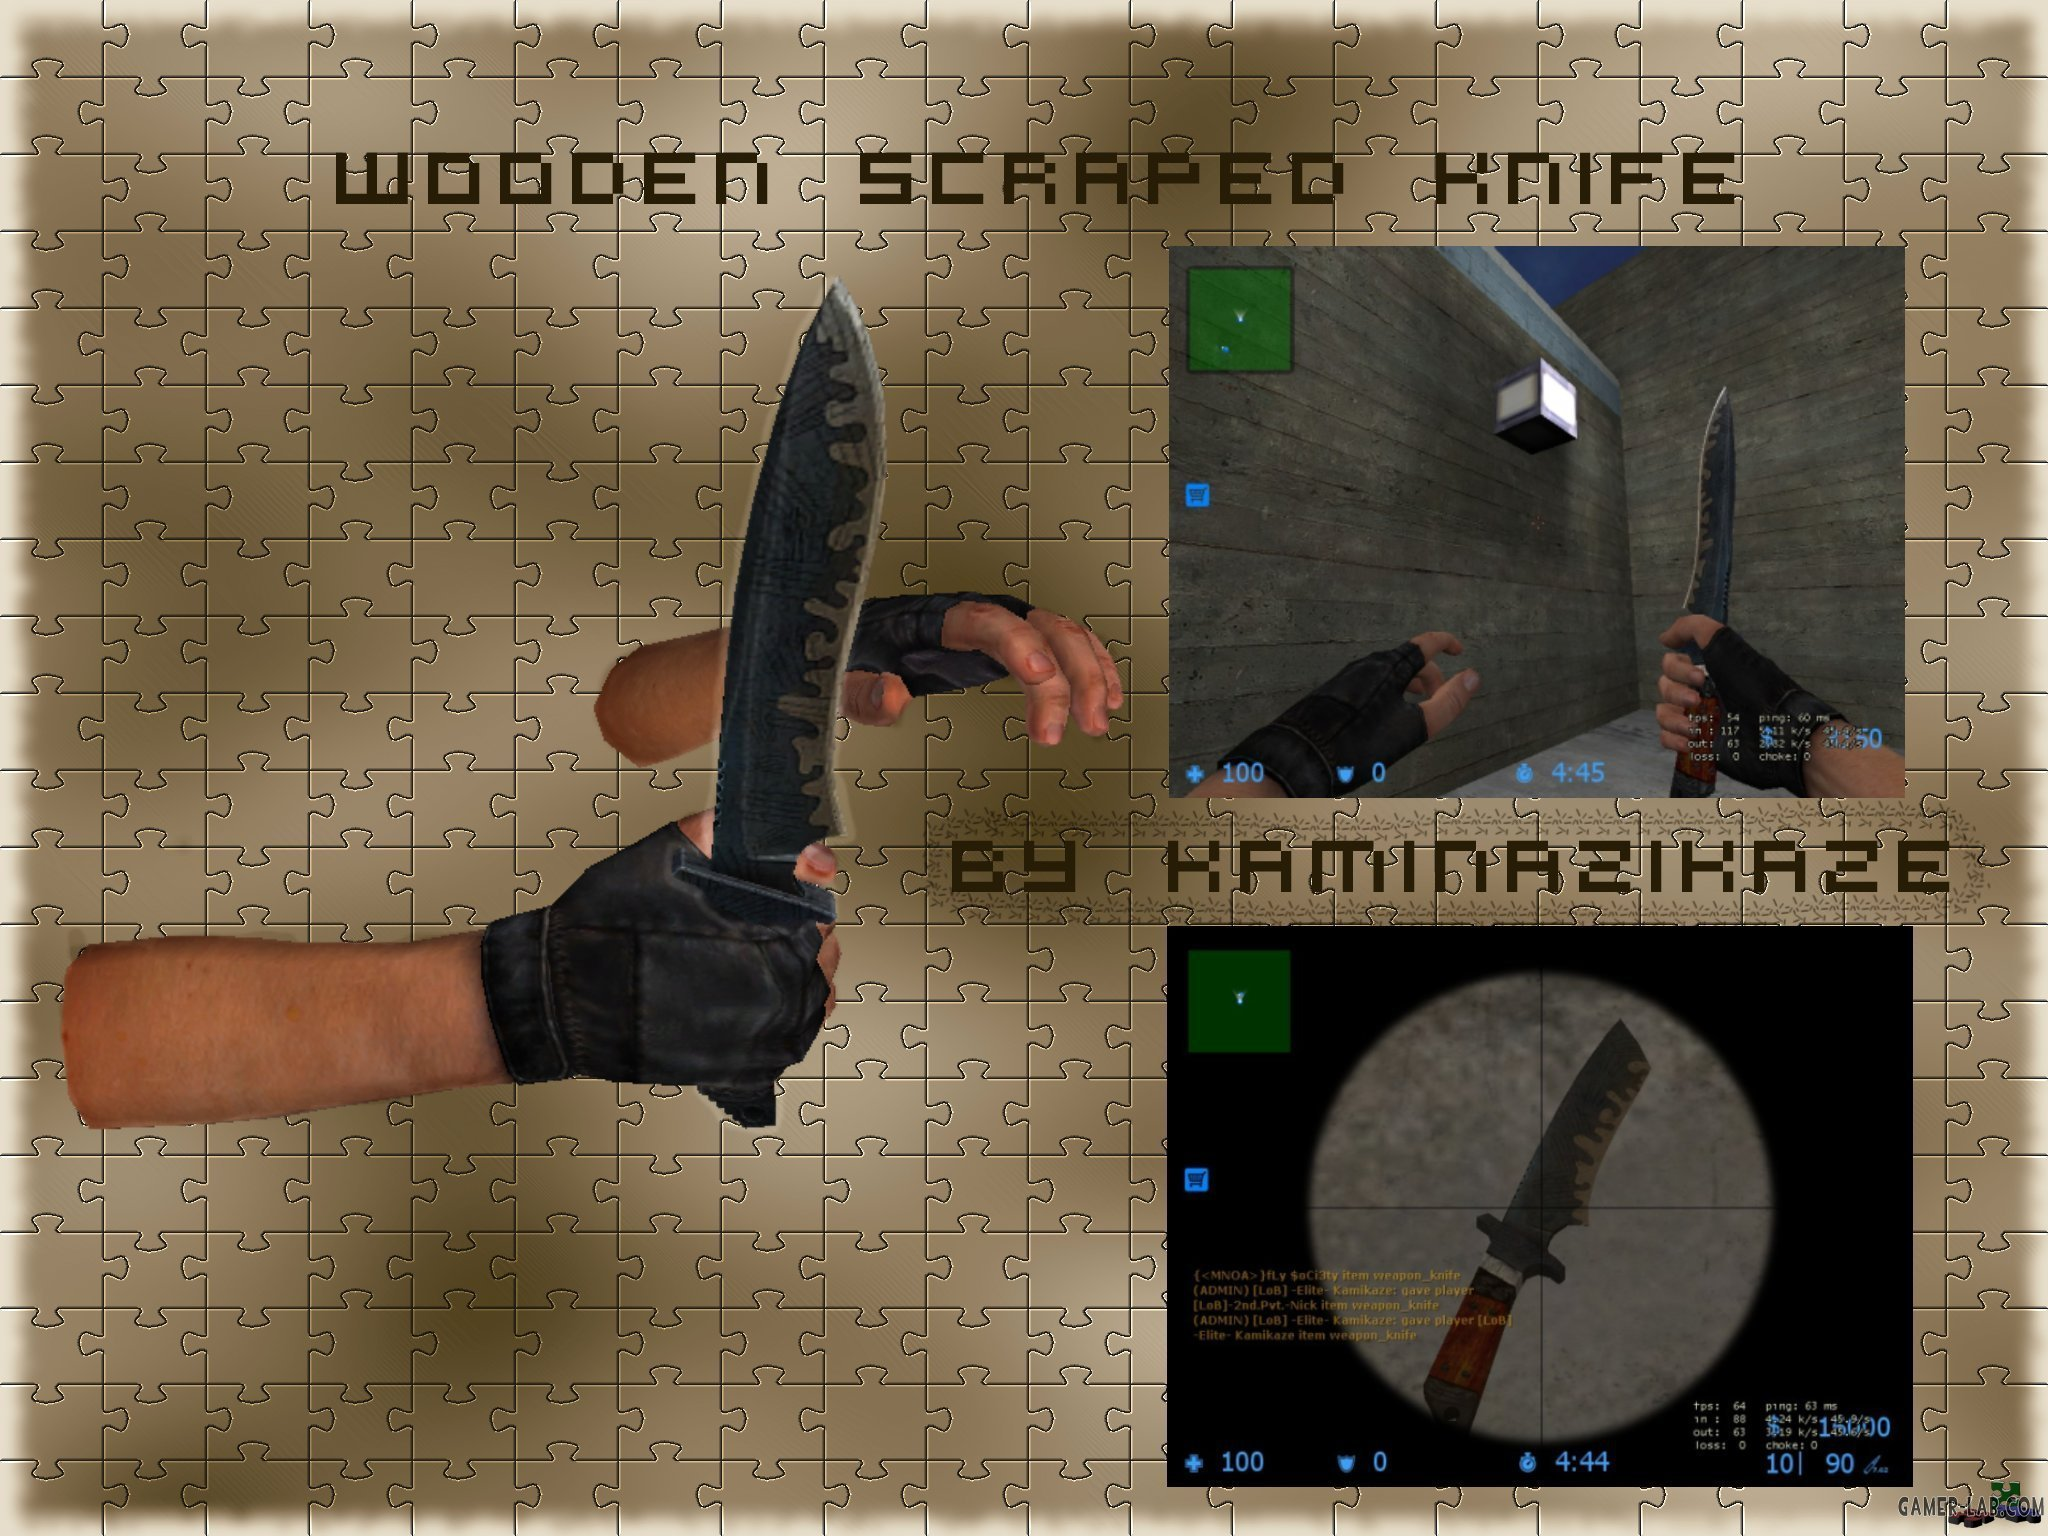 Wooden_Scraped_Knife